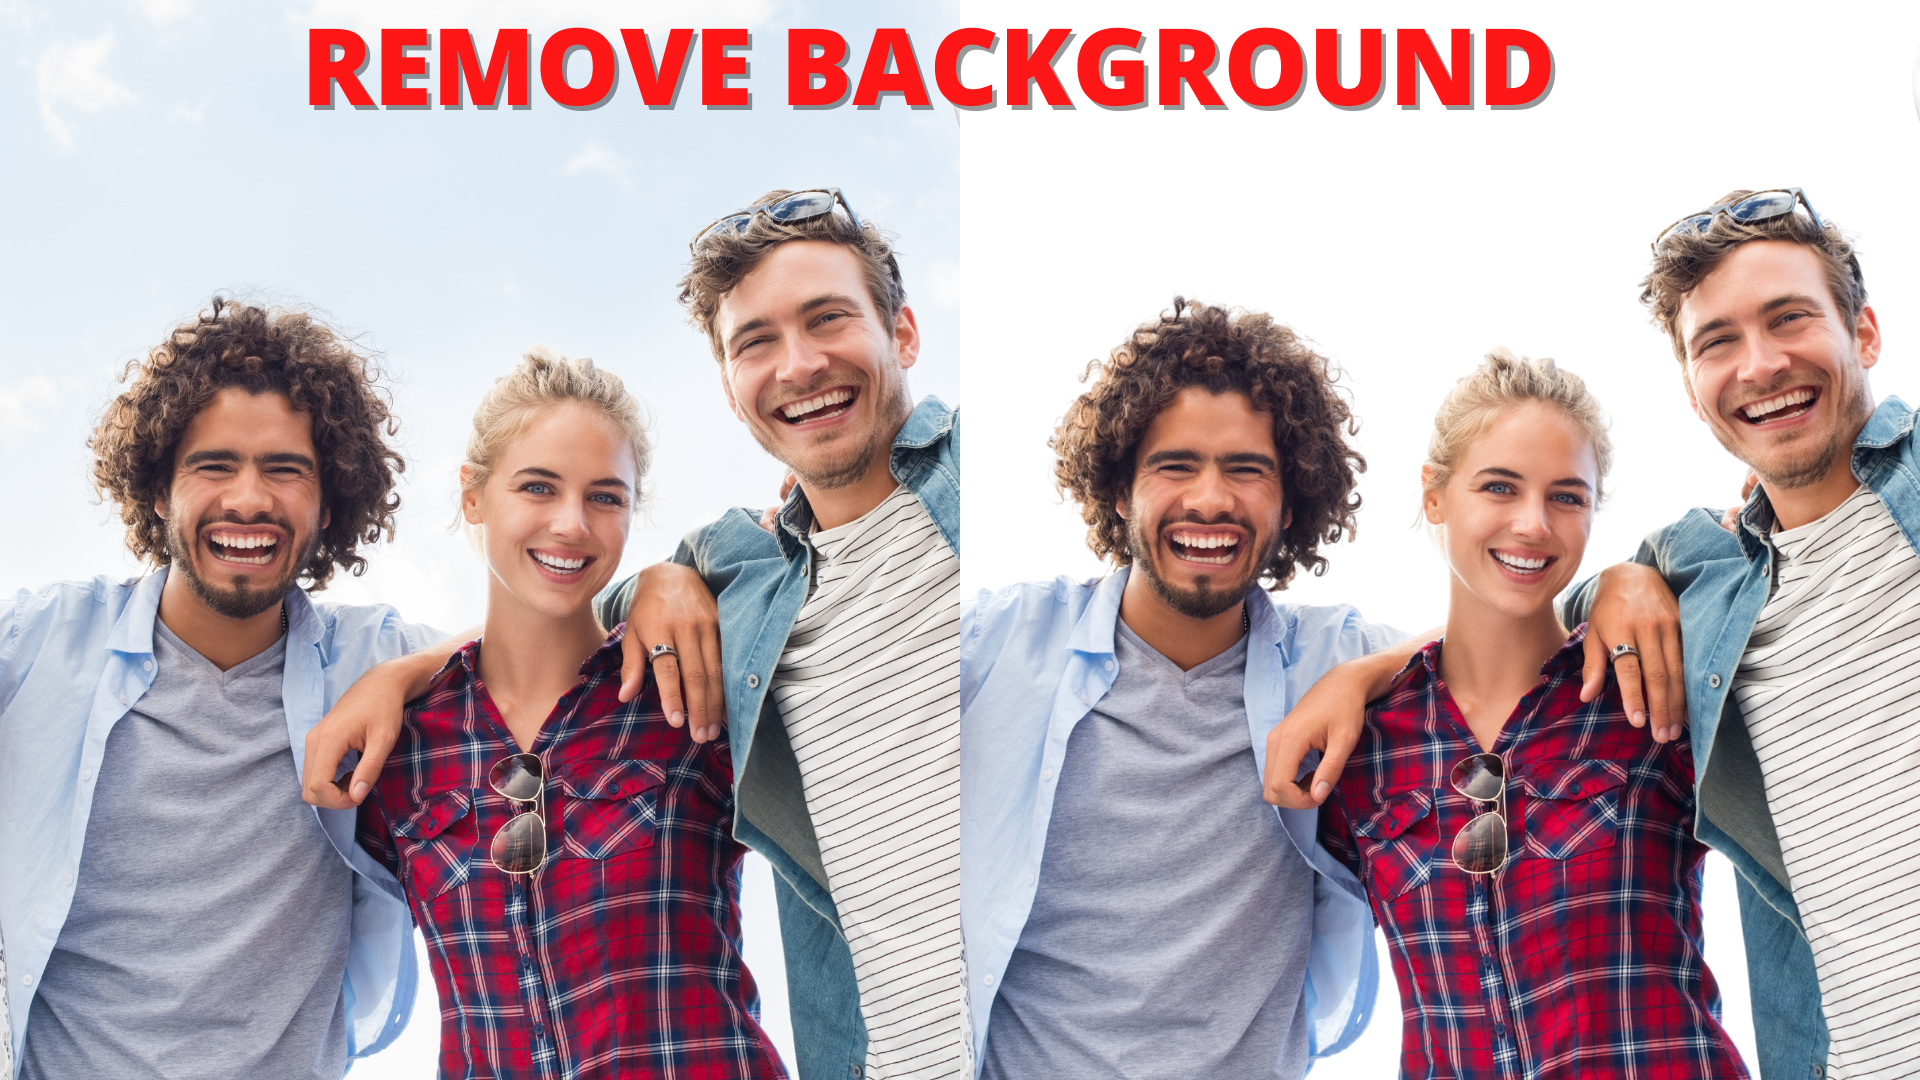 I will do fast delivery 5 photo background remove from image